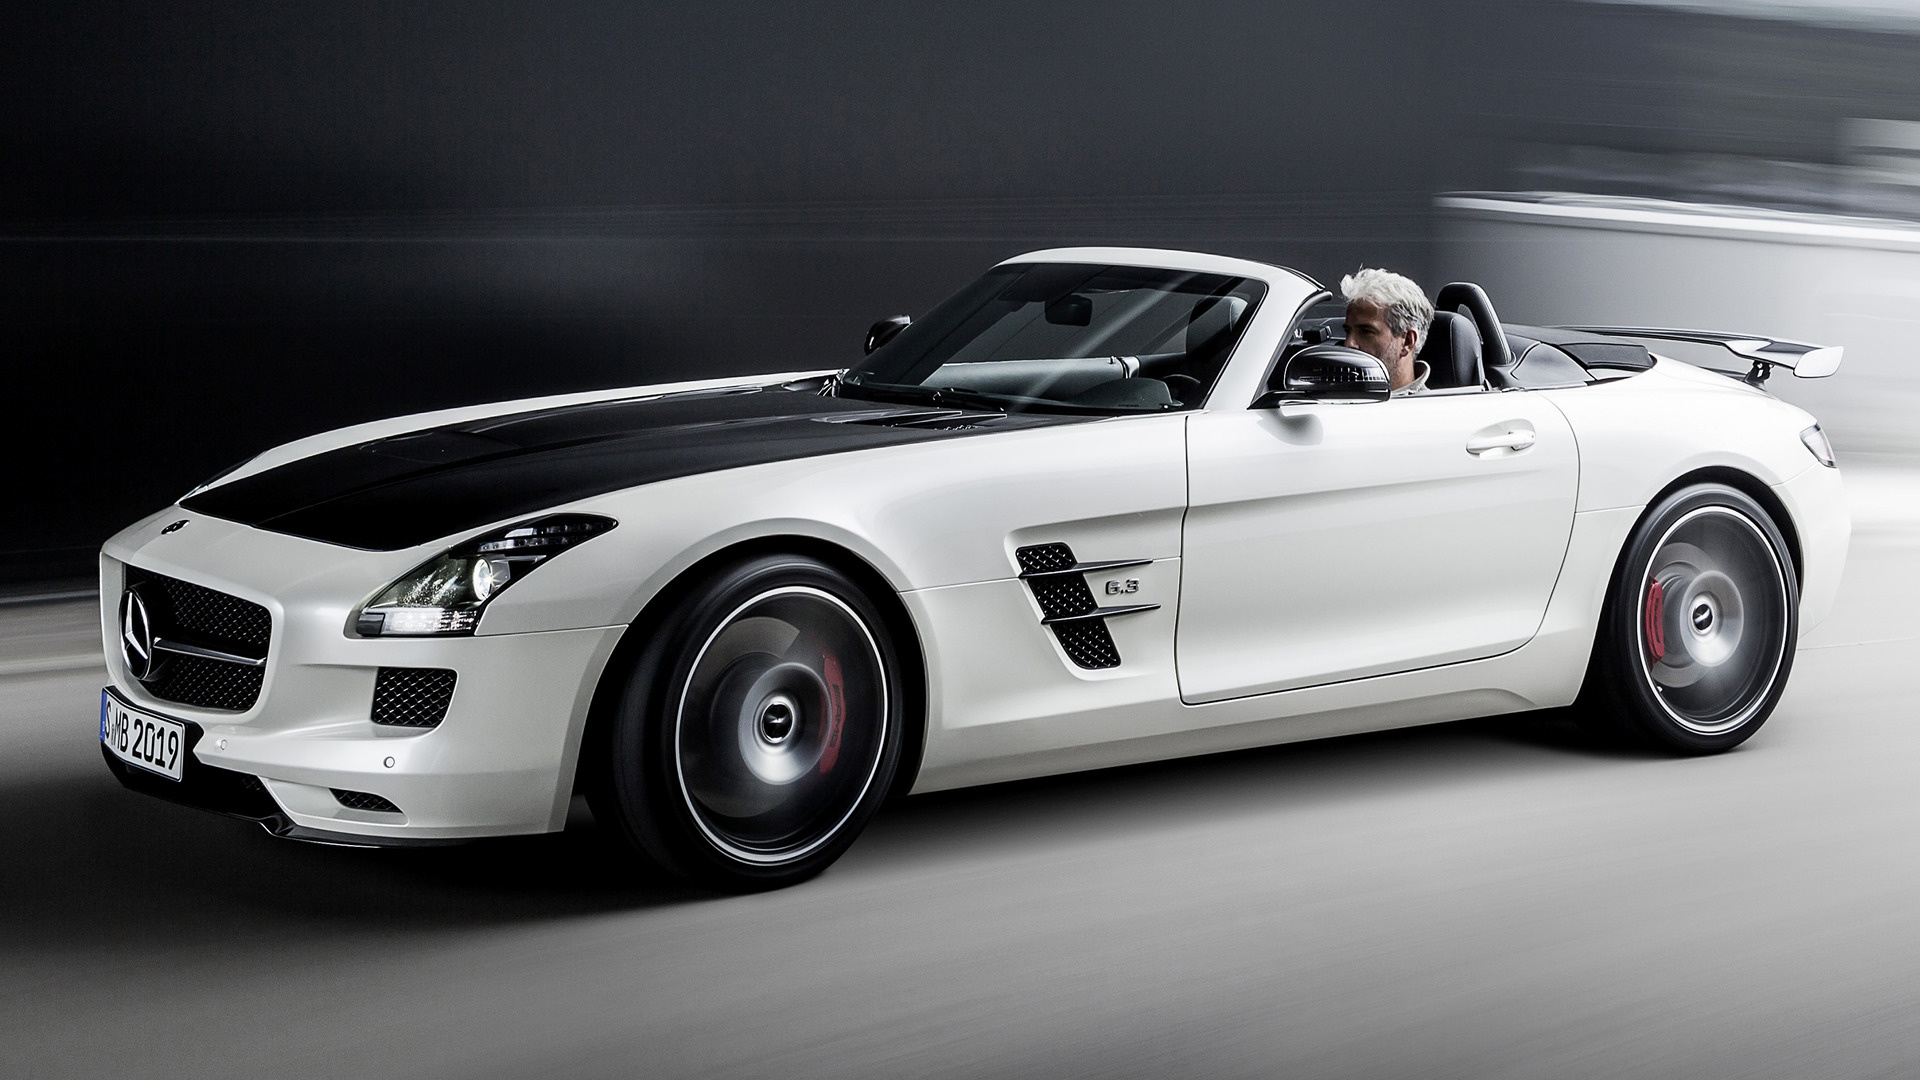 mercedes benz sls amg gt roadster final edition 2014 wallpapers and hd images car pixel. Black Bedroom Furniture Sets. Home Design Ideas